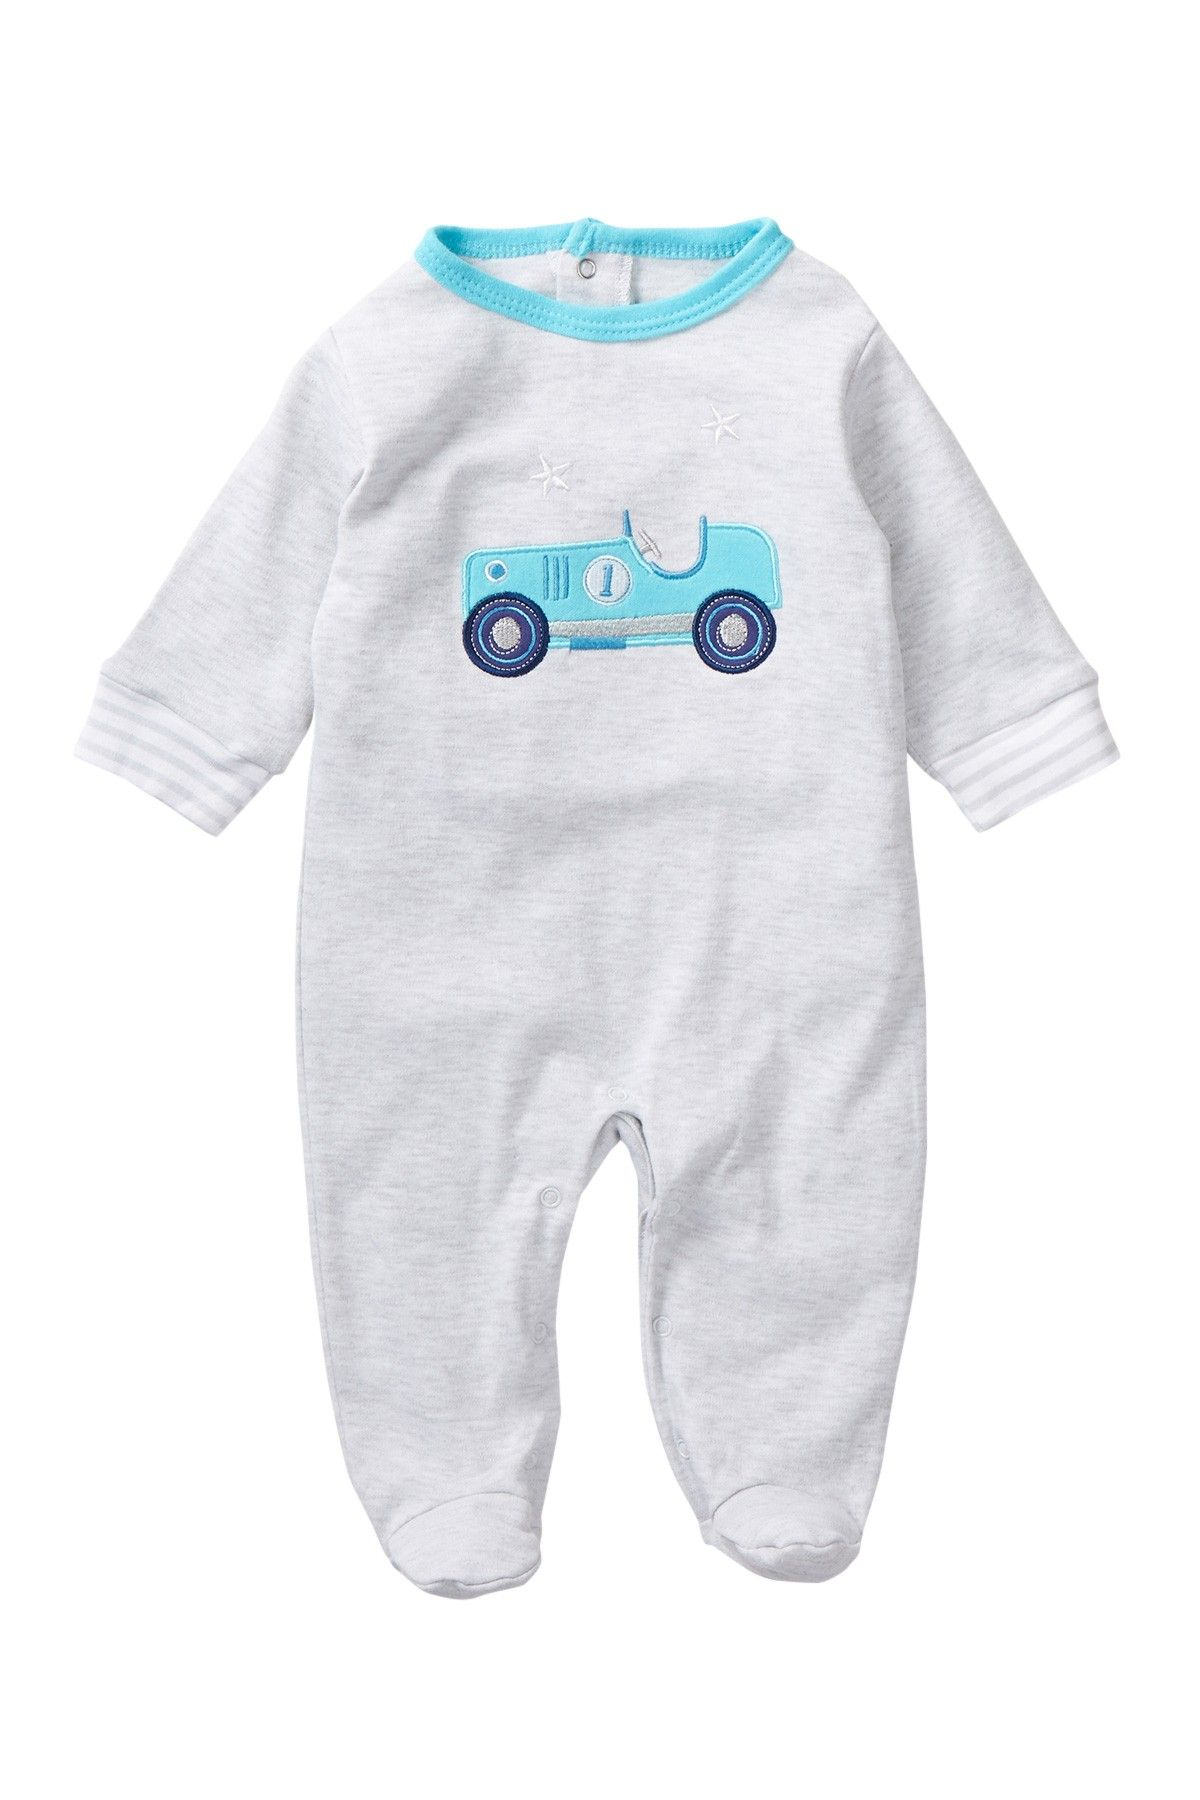 Rene Rofe Little Driver Footie Baby Boys